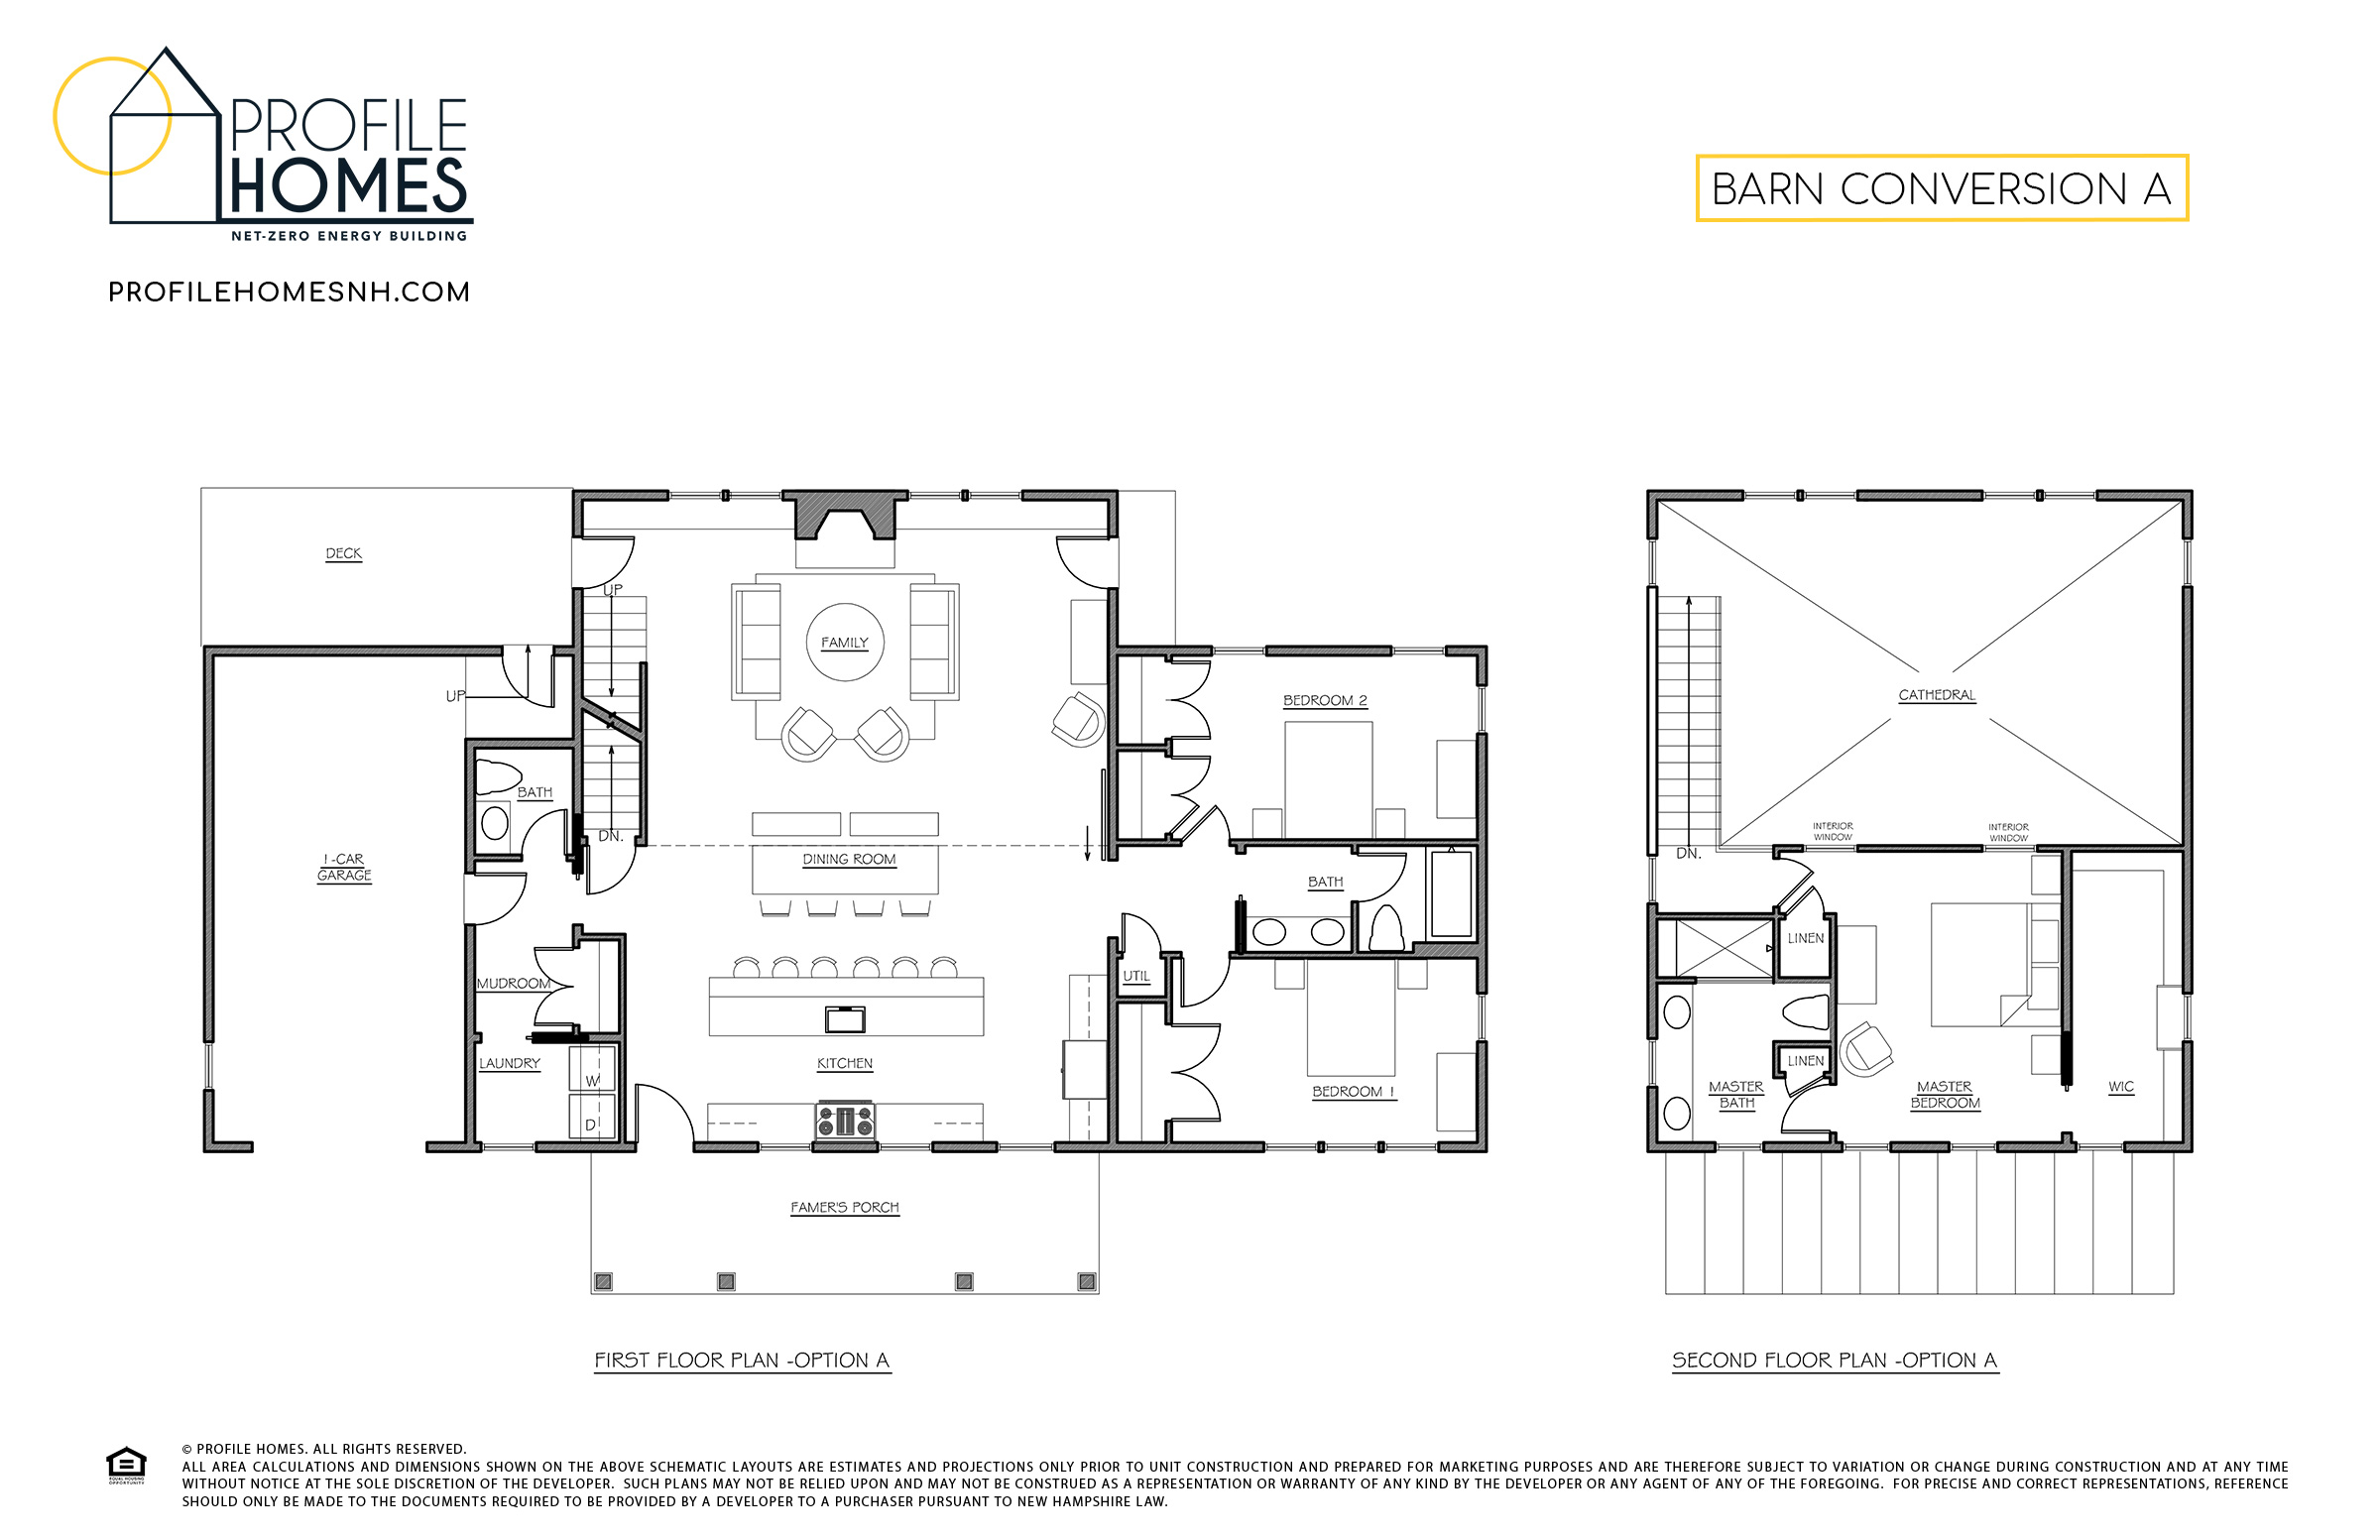 Profile Homes Floorplans Barn Conversion A © 2018 Profile Homes